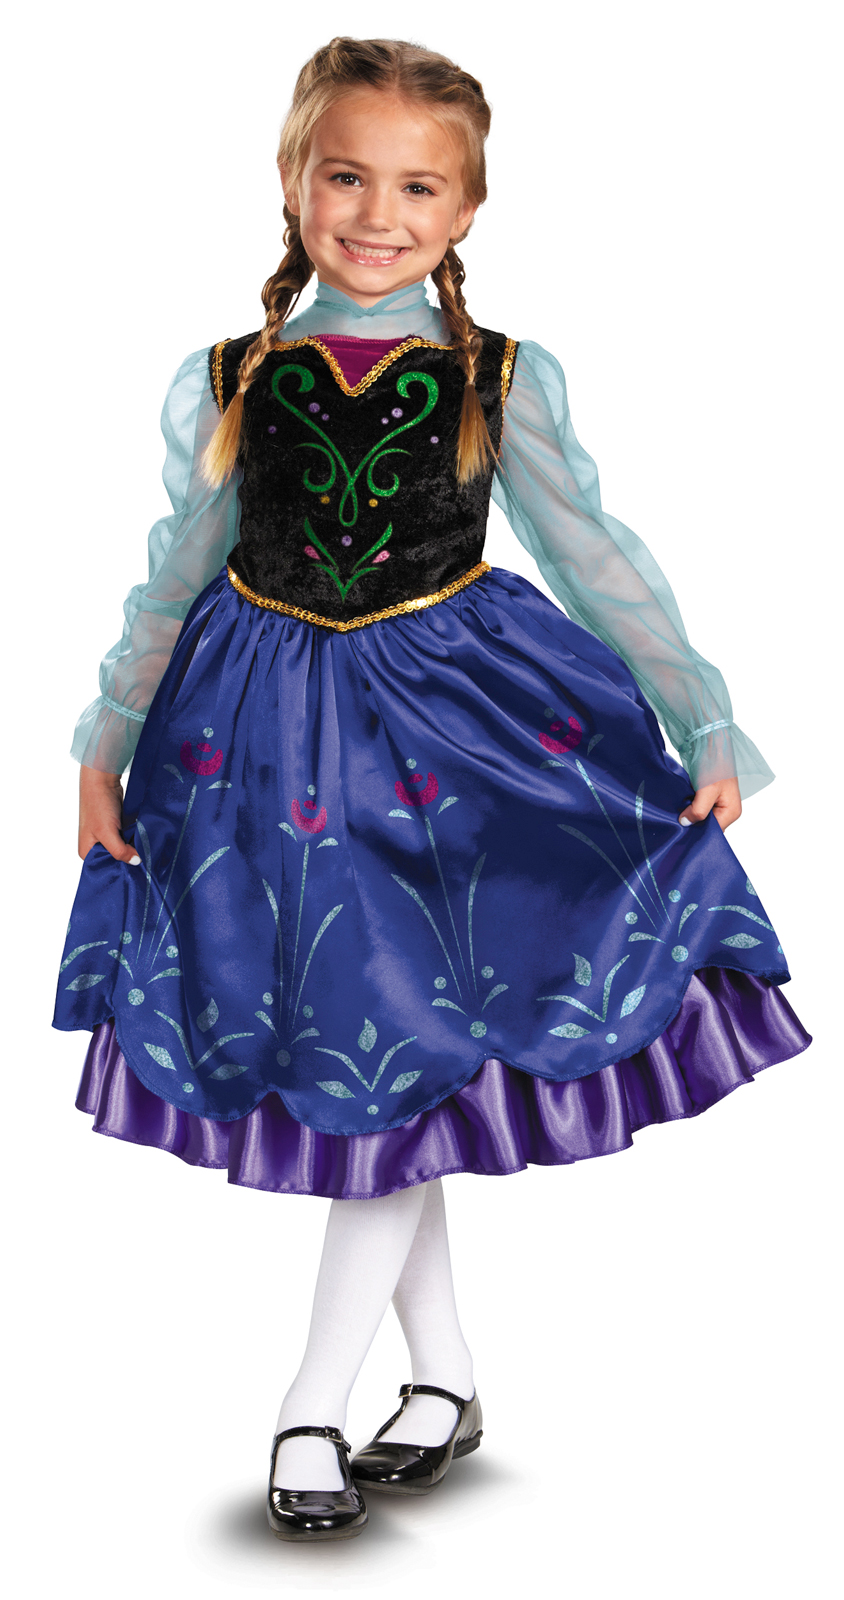 Disney Frozen Deluxe Anna Toddler / Child Costume